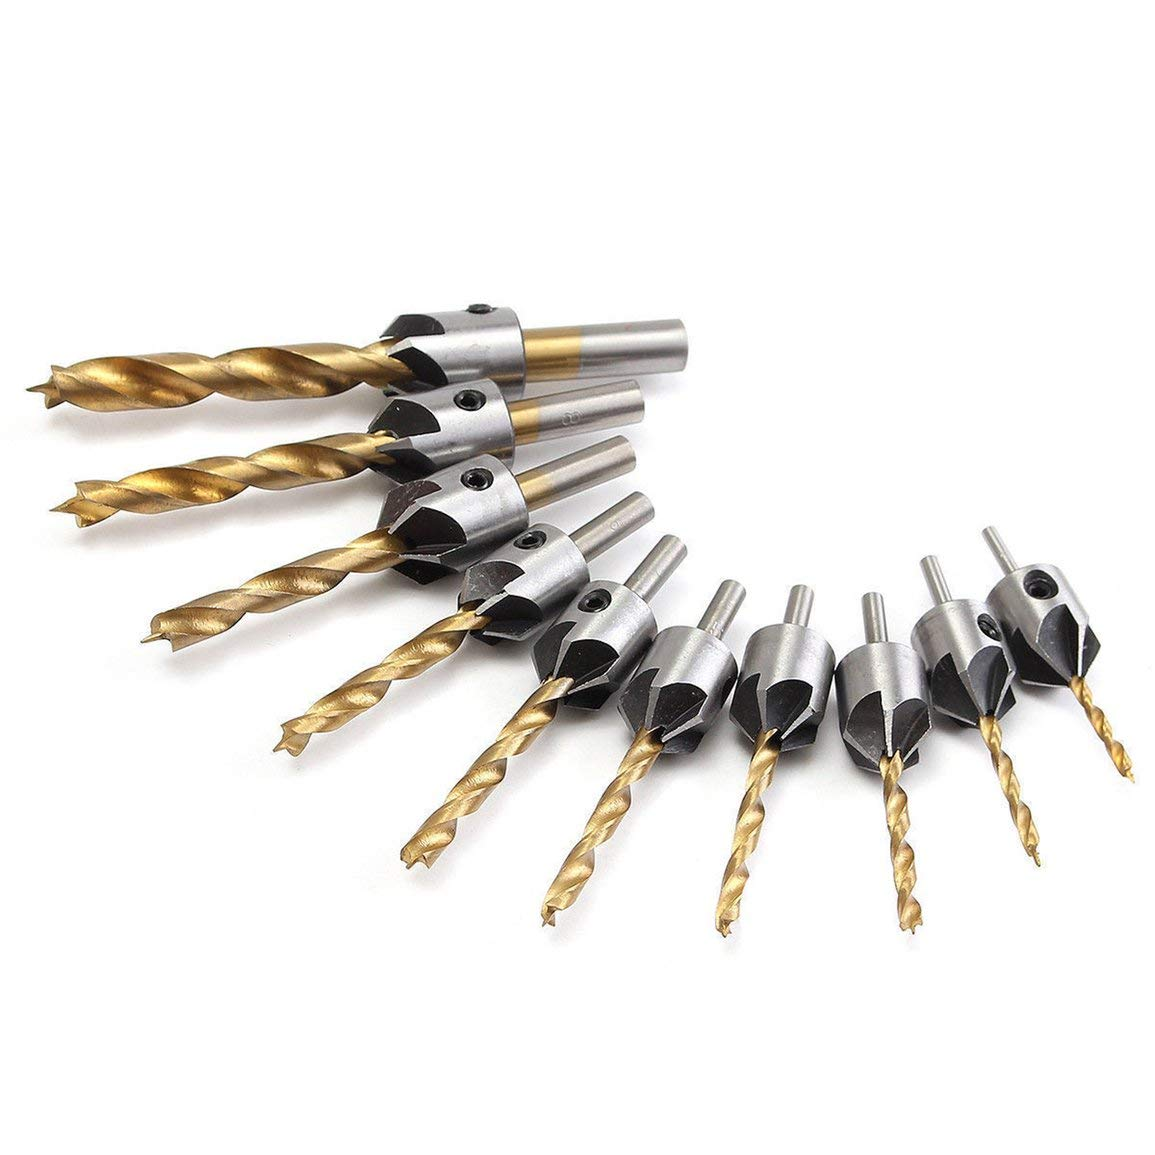 Color:Gold /& Silver Wrench 3mm-10mm Durable Use HSS 5 Flute Countersink Wood Drill Bit+Quick Change Hex Shank Screw Countersink Drill Size:5mm